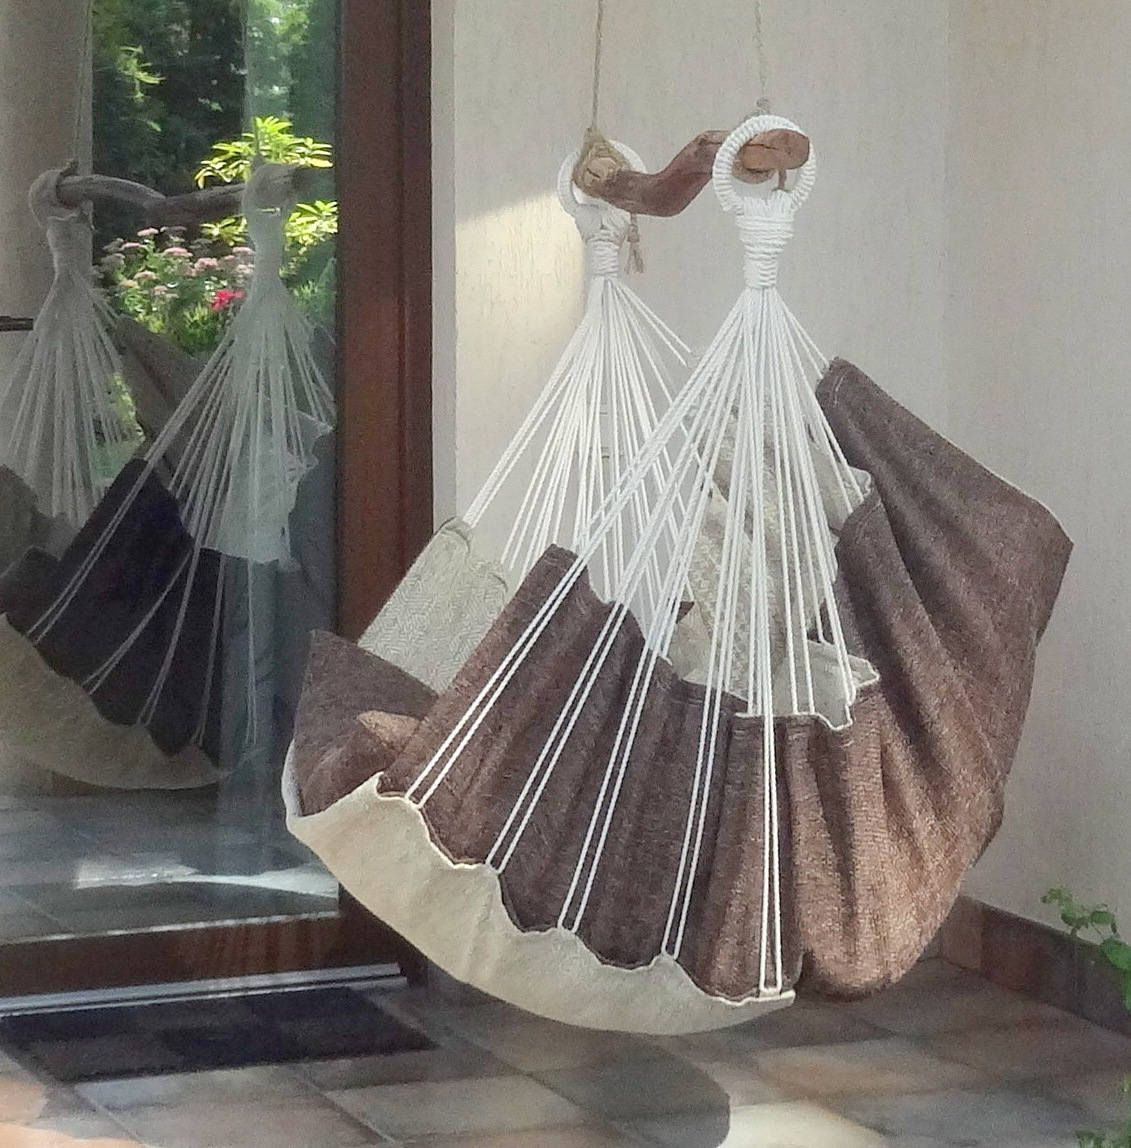 Hammock chair for home and garden for interior decor and bedroom